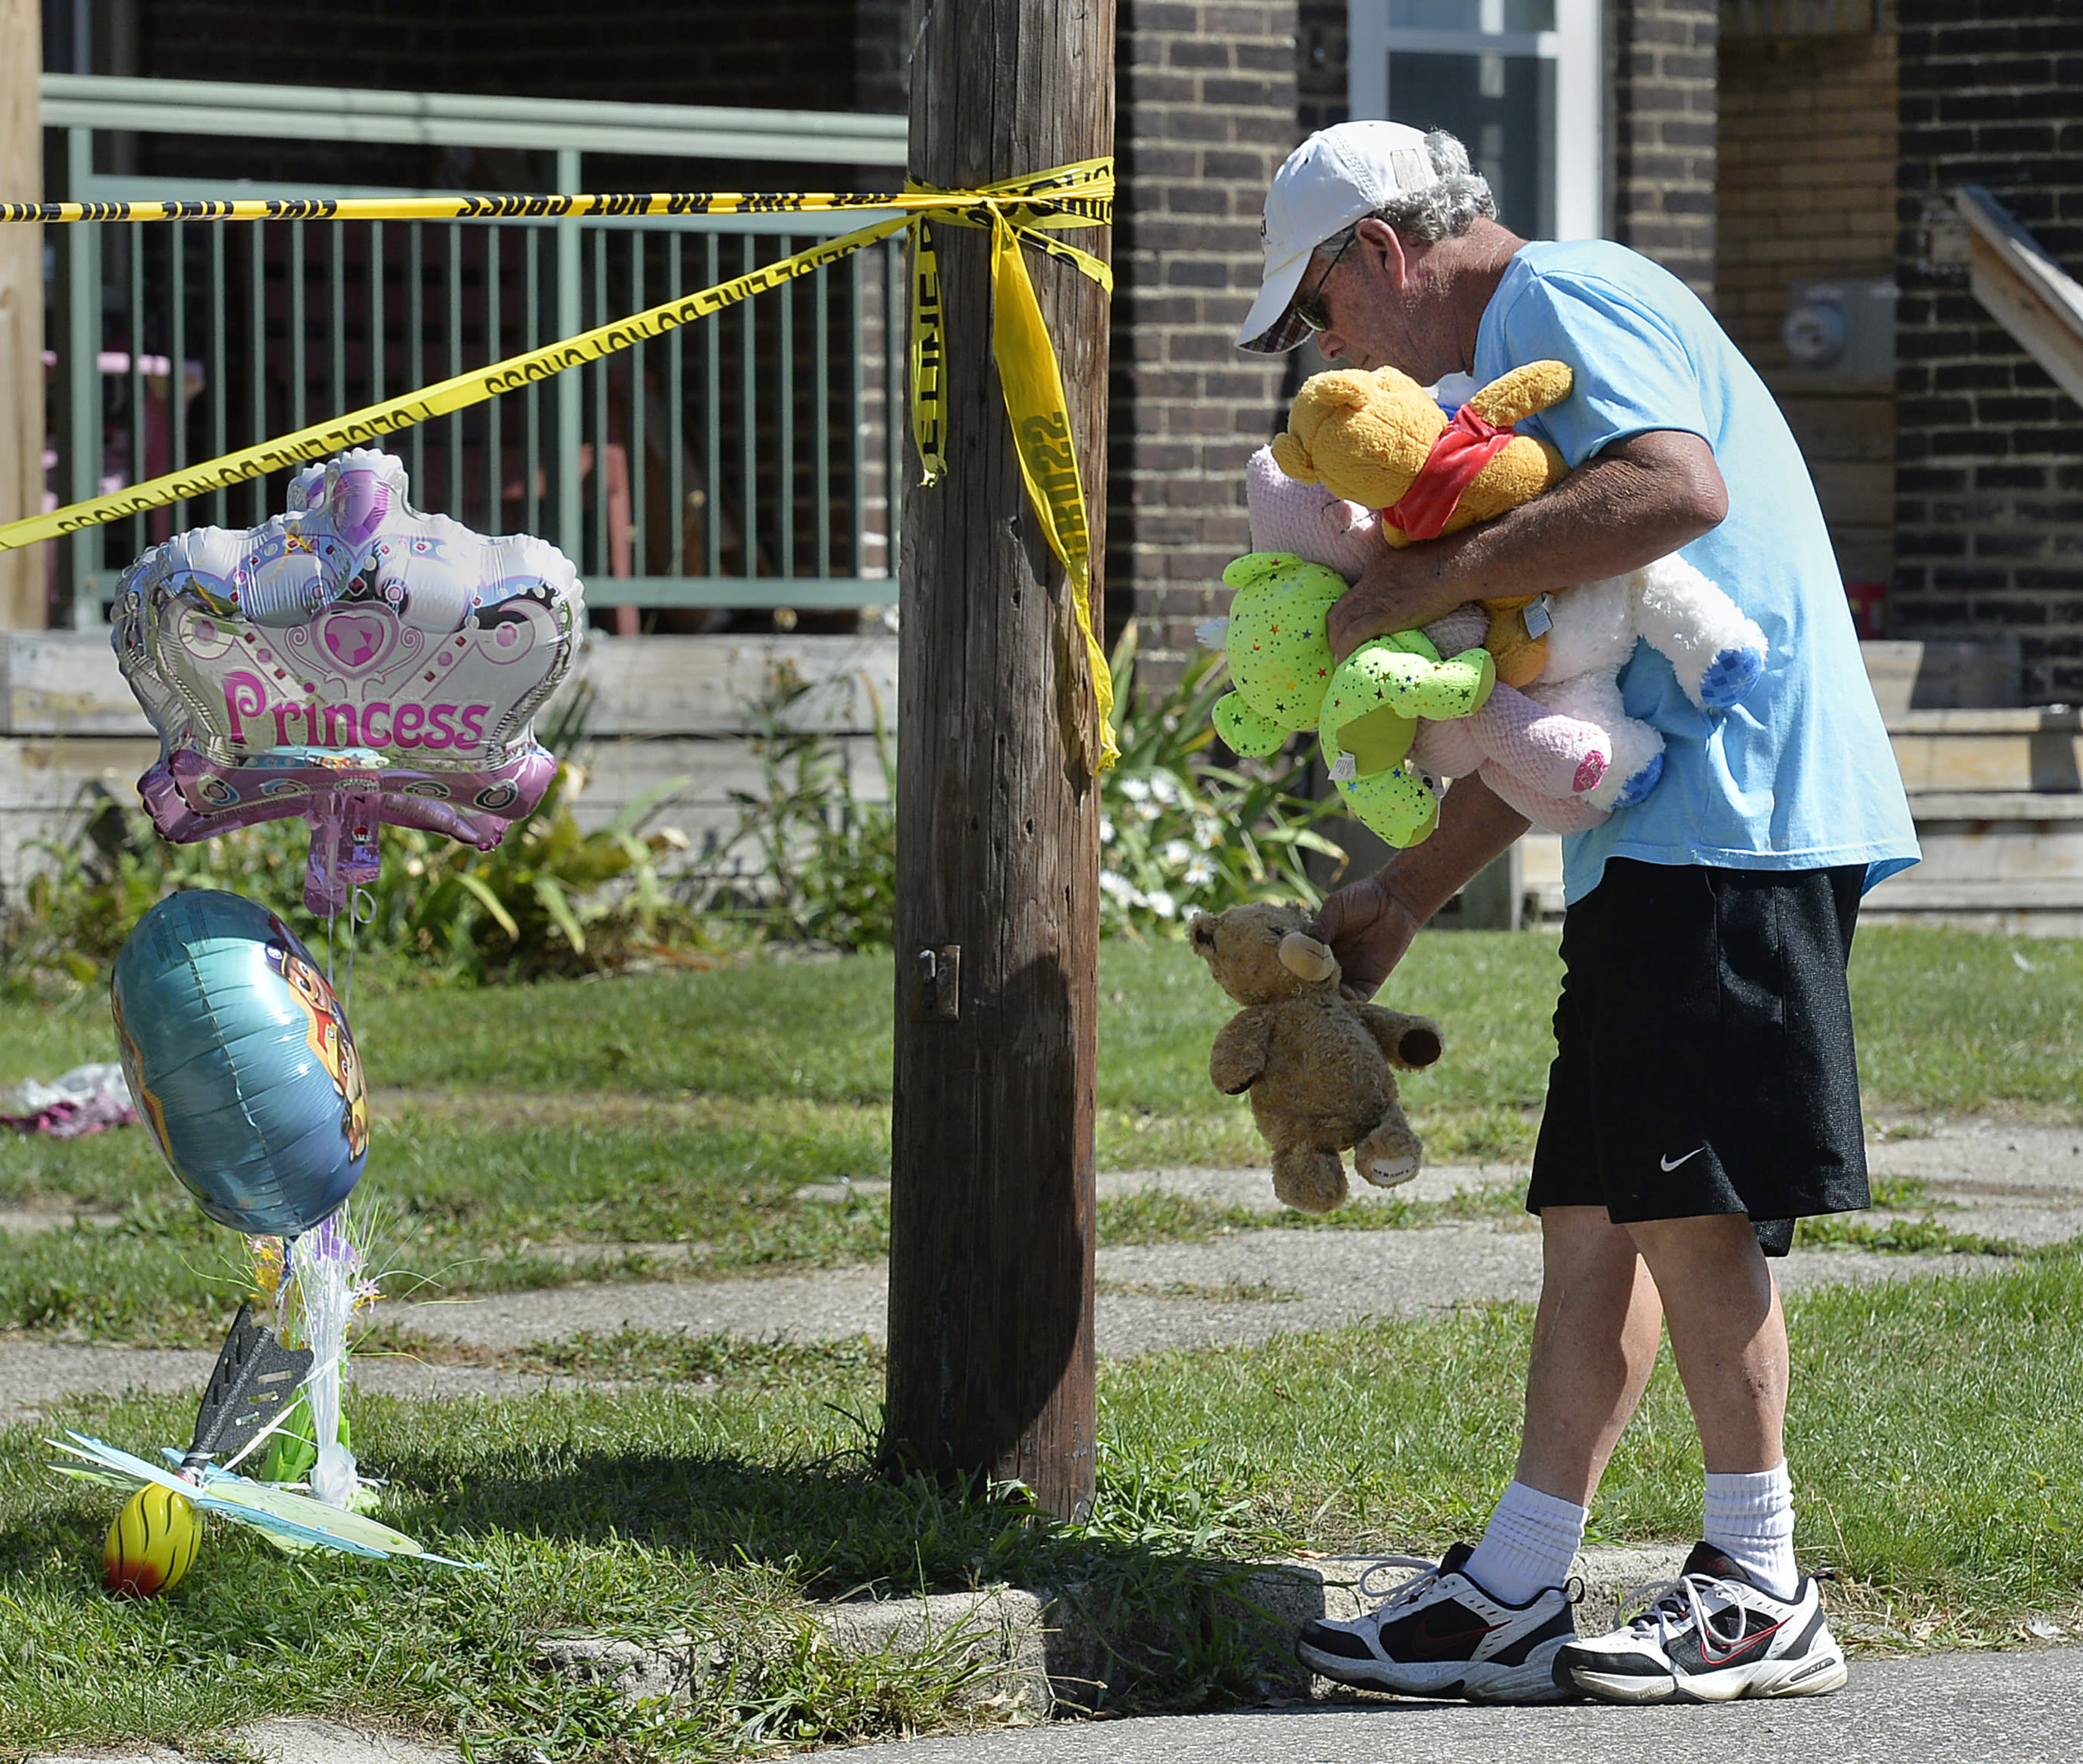 5 children killed in fire at Erie day care center | News